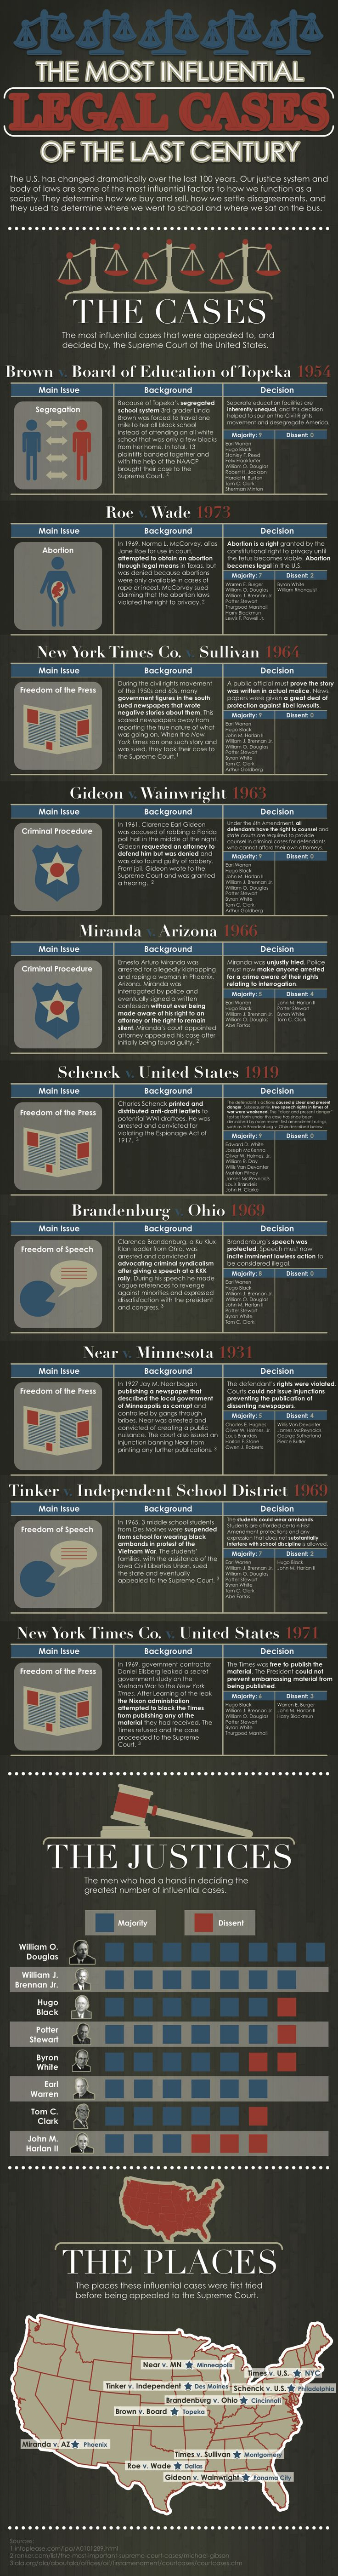 The Most Influential Legal Cases of the Last Century | Visual.ly